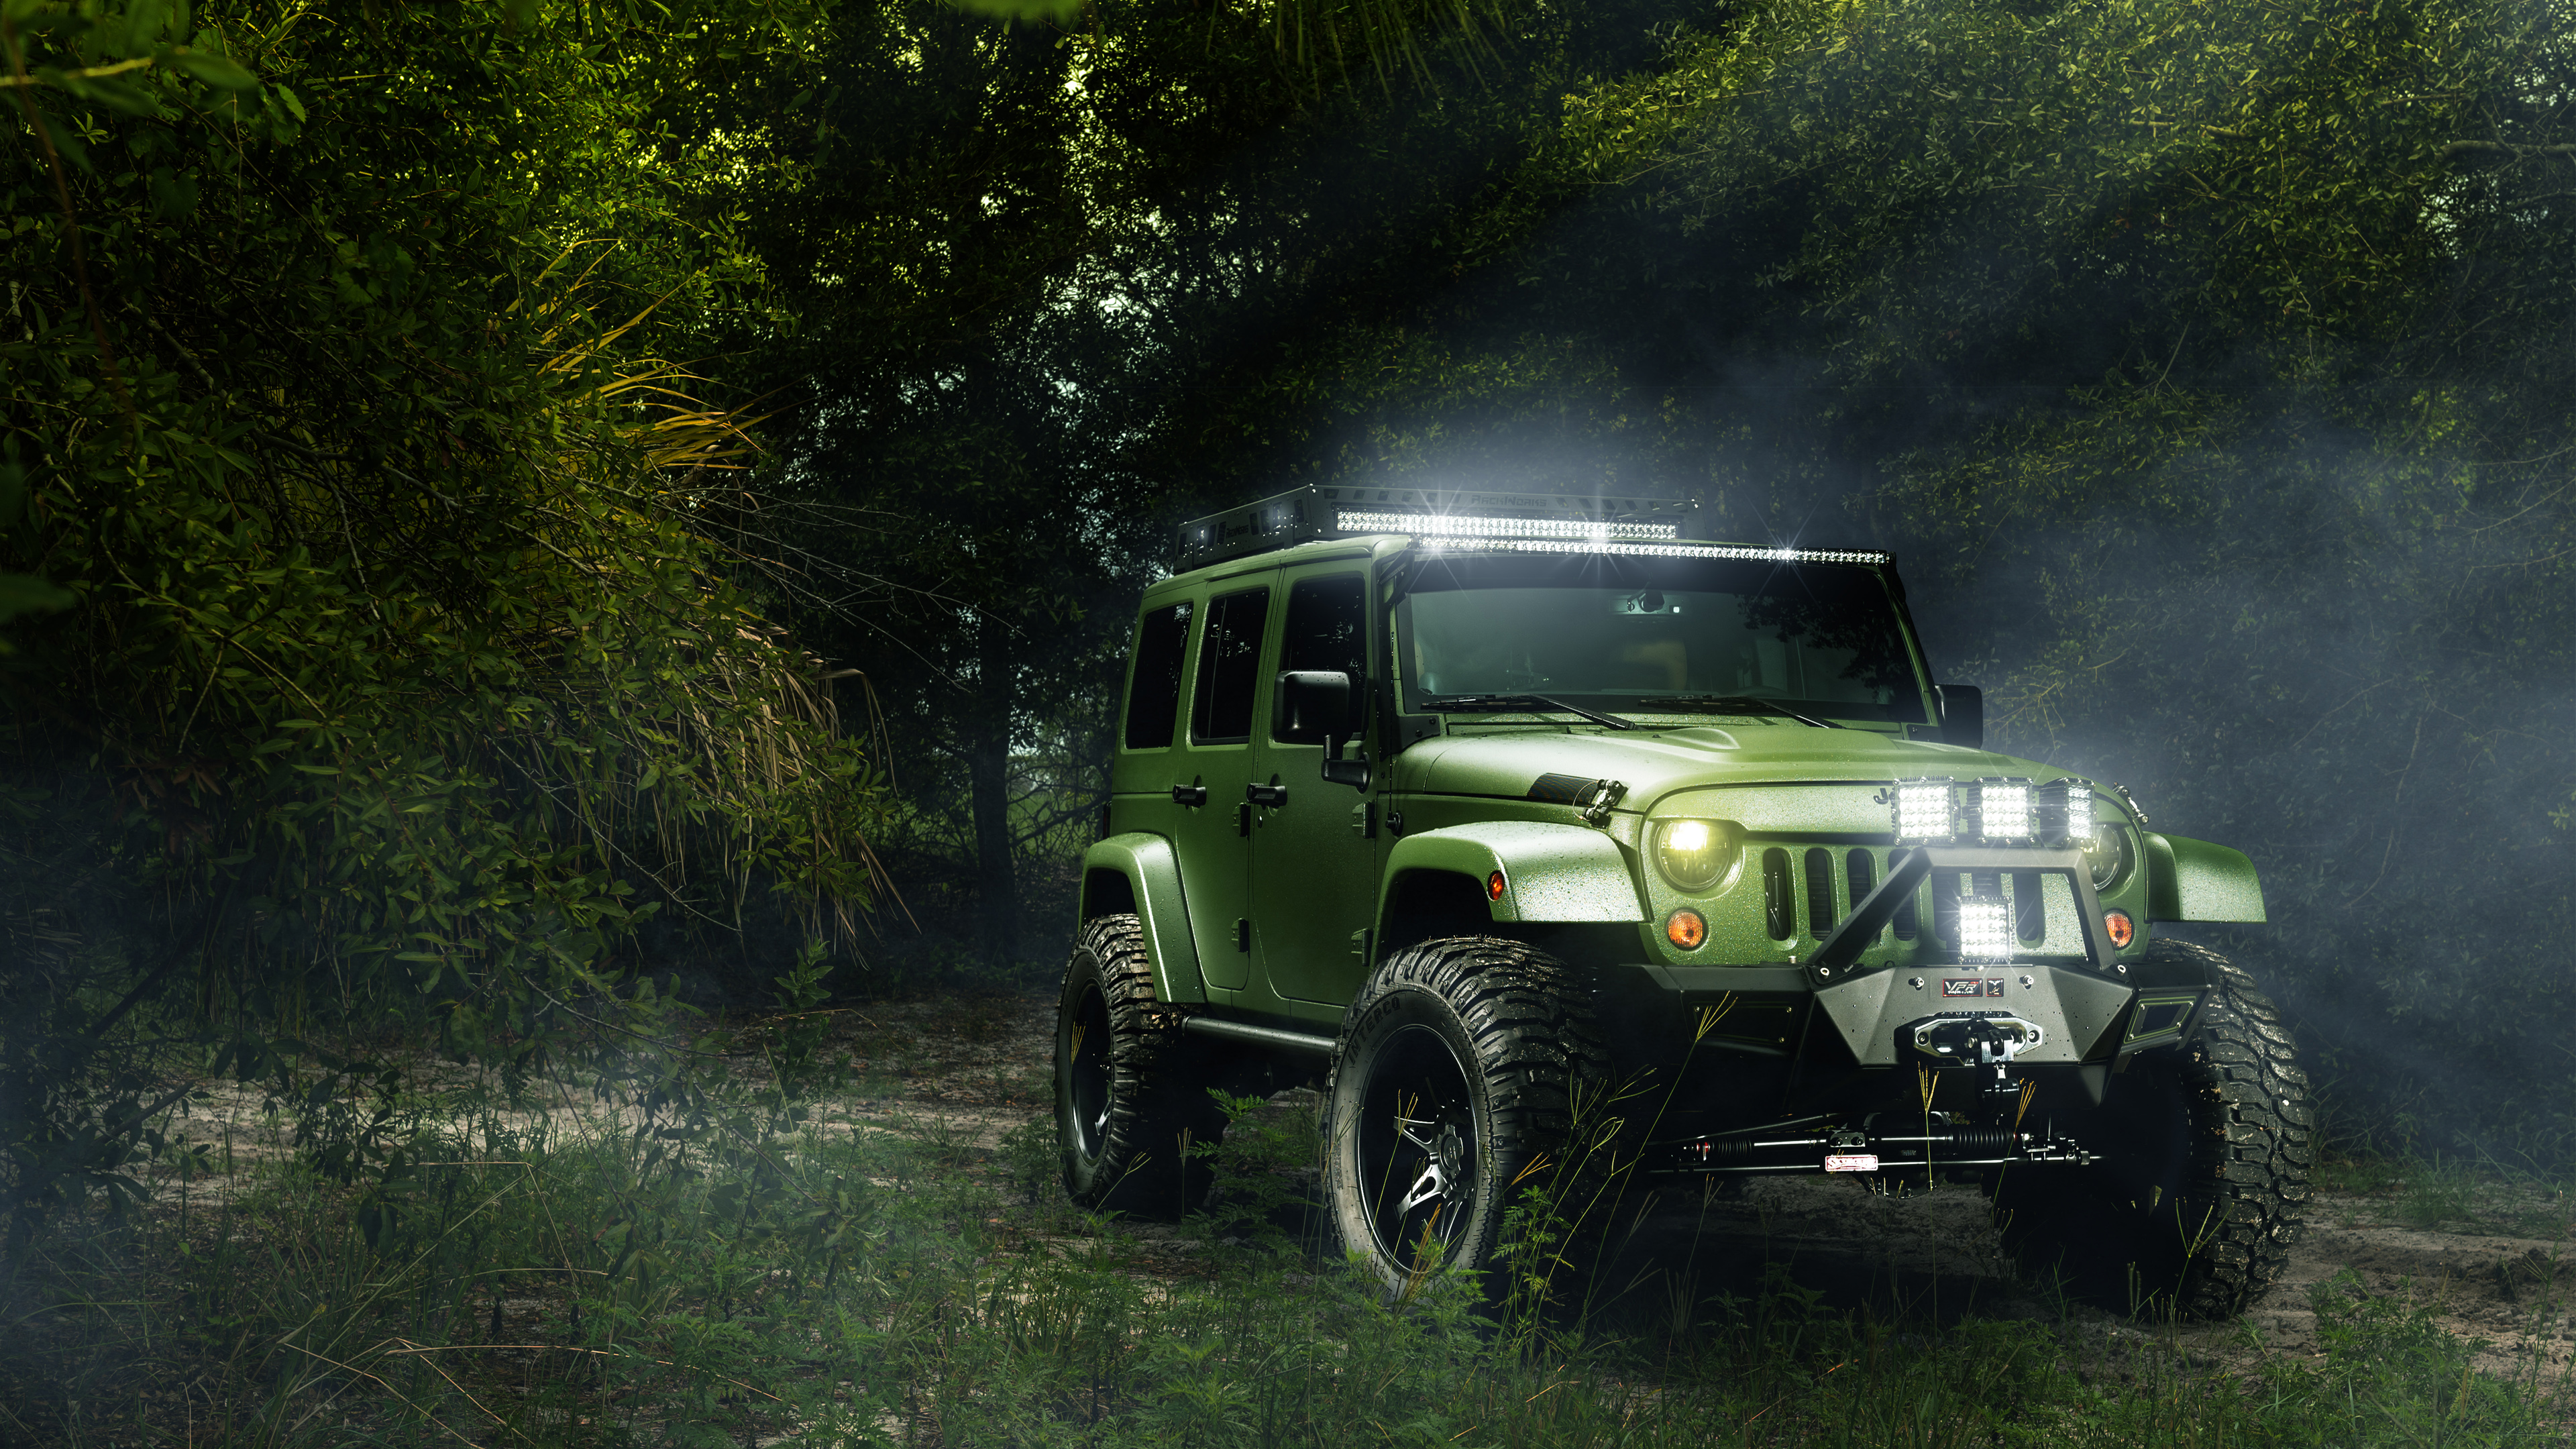 Ordinaire Wallpaper: Jeep Wrangler